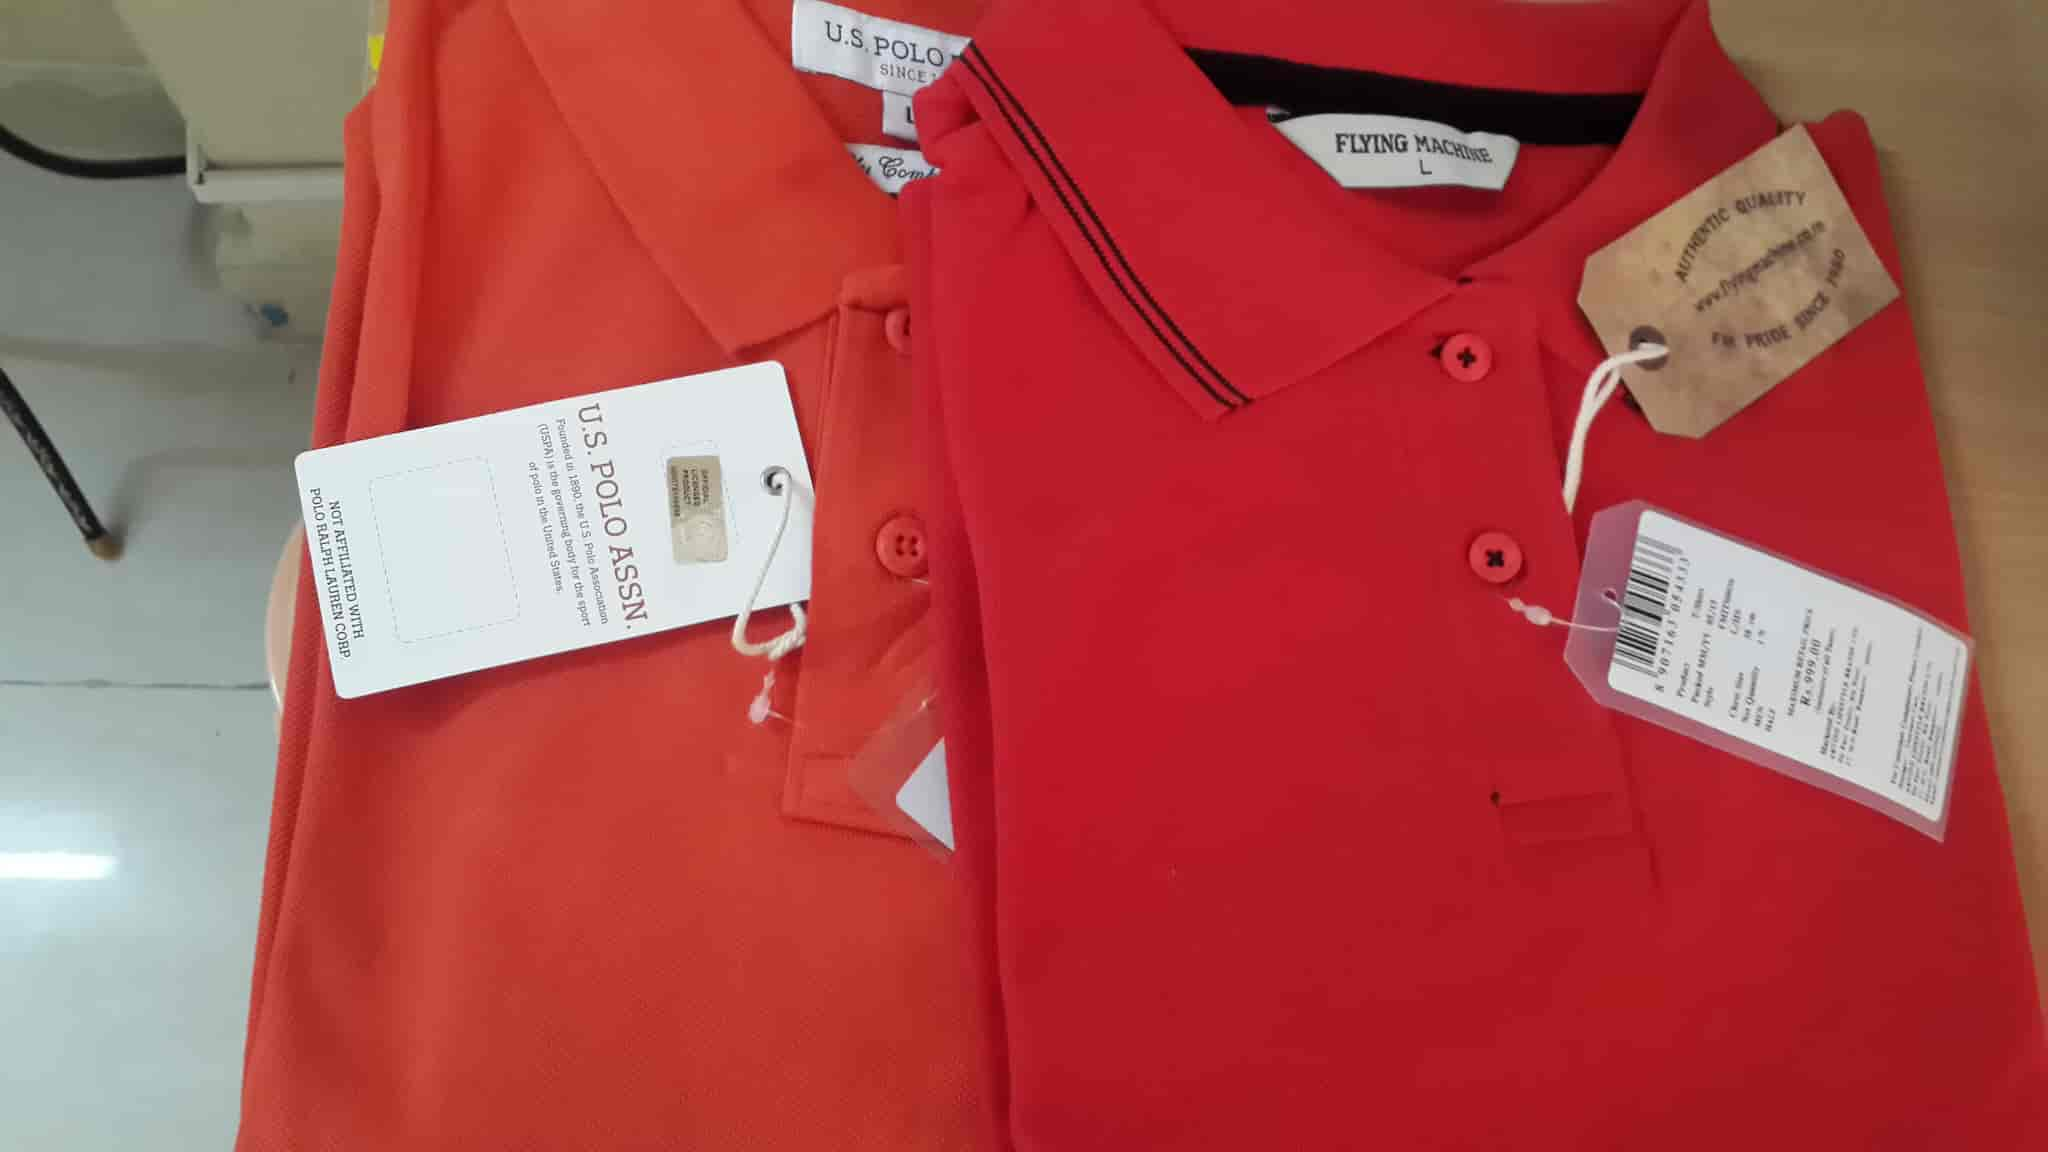 56e13f9e Seema Gift Worlds, Secunderabad - Award Manufacturers in Hyderabad -  Justdial